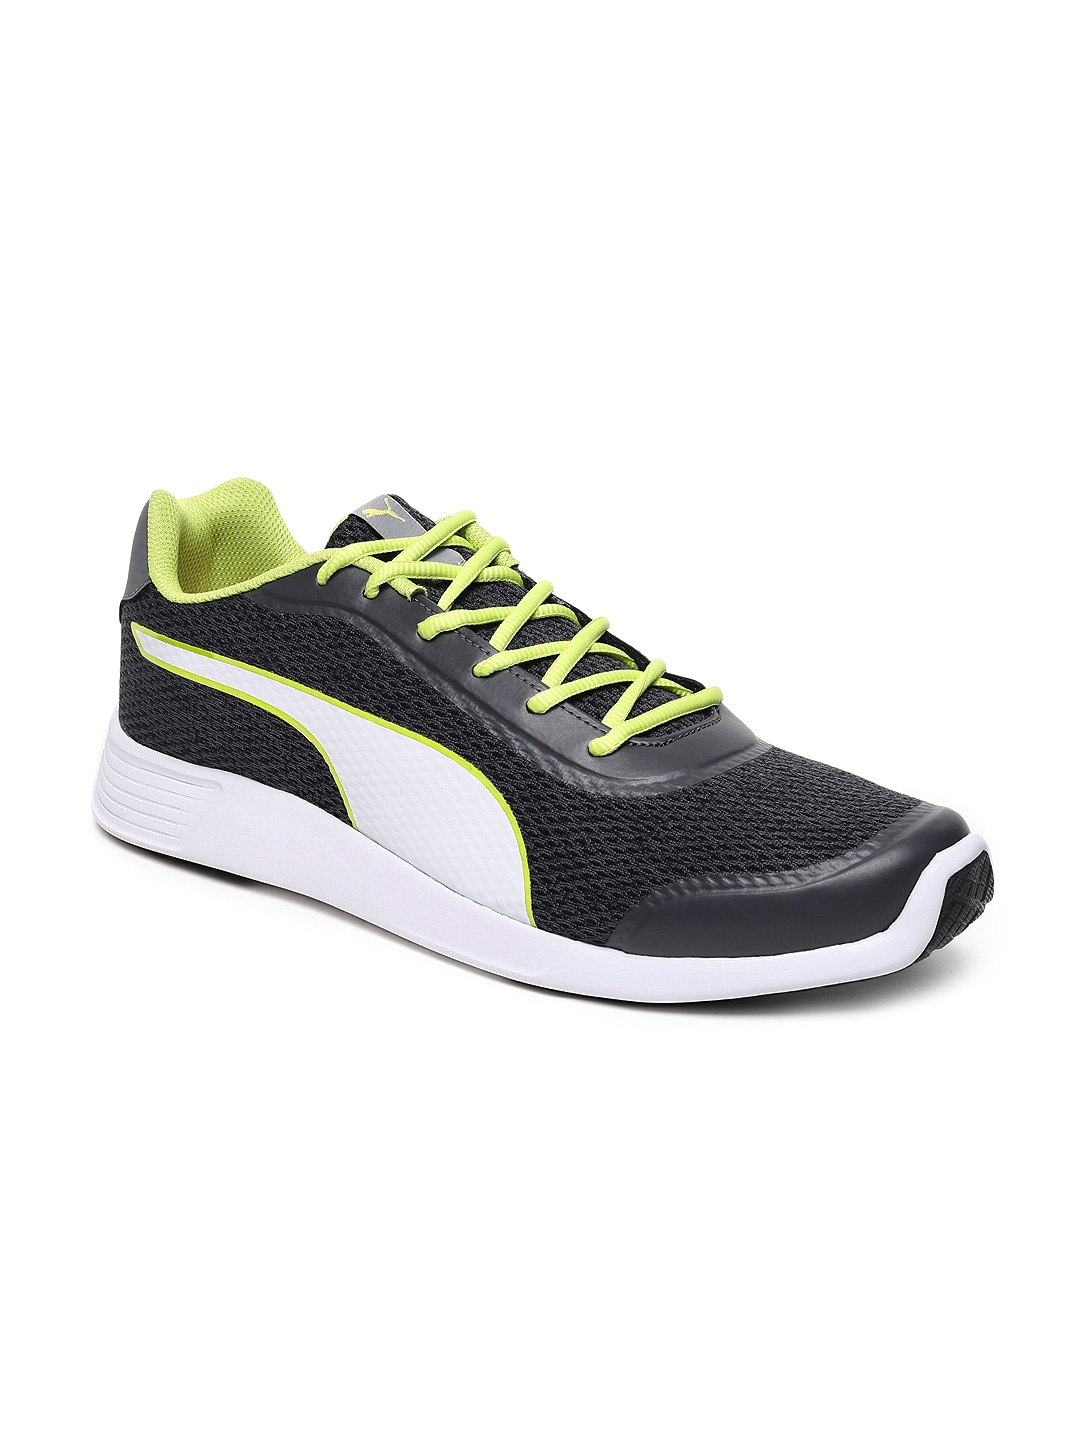 05d48cac7a6f Puma Shoes - Buy Puma Shoes for Men   Women Online in India